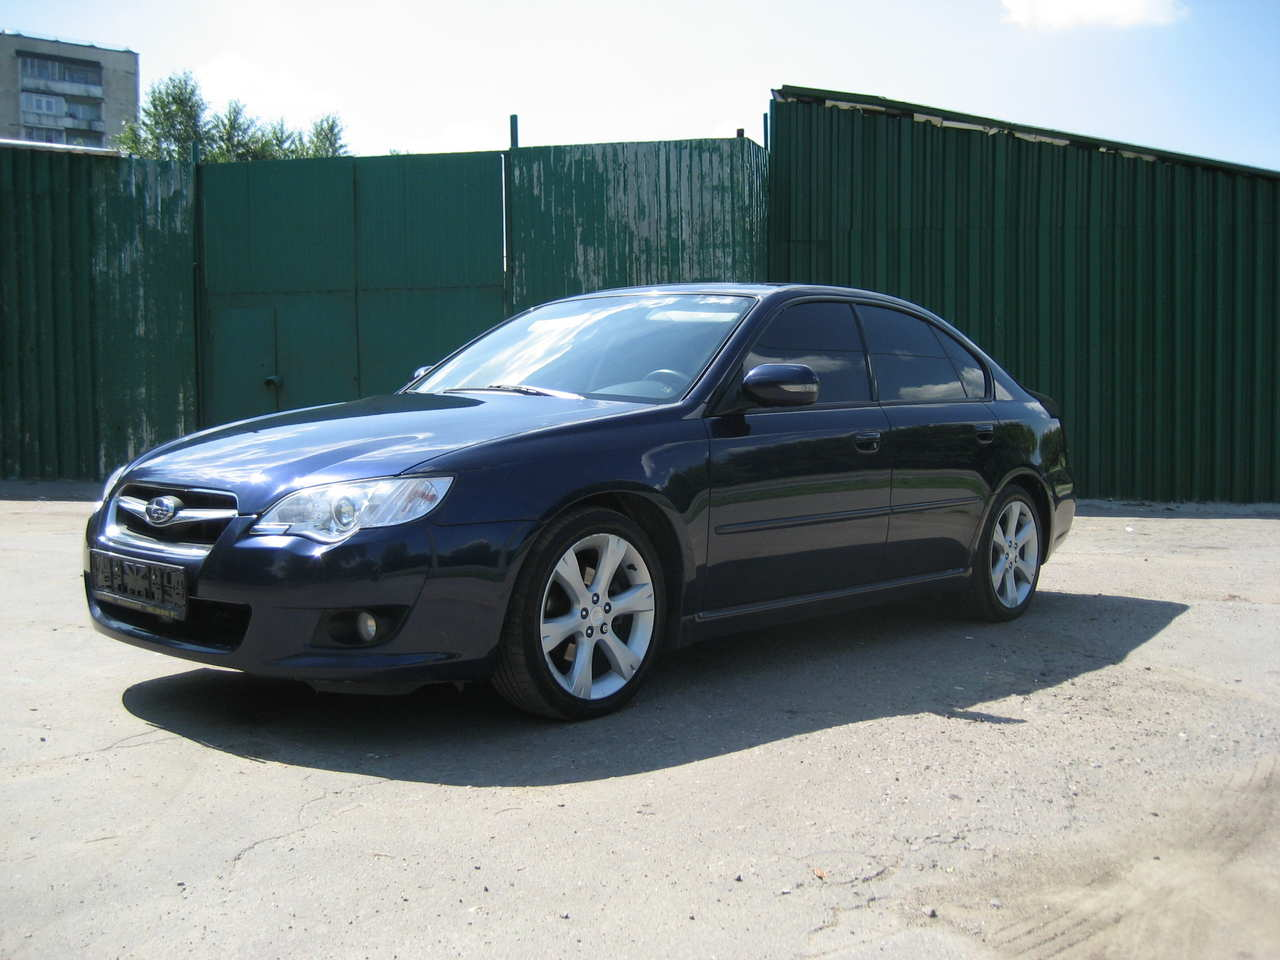 used 2007 subaru legacy photos 2000cc gasoline automatic for sale. Black Bedroom Furniture Sets. Home Design Ideas